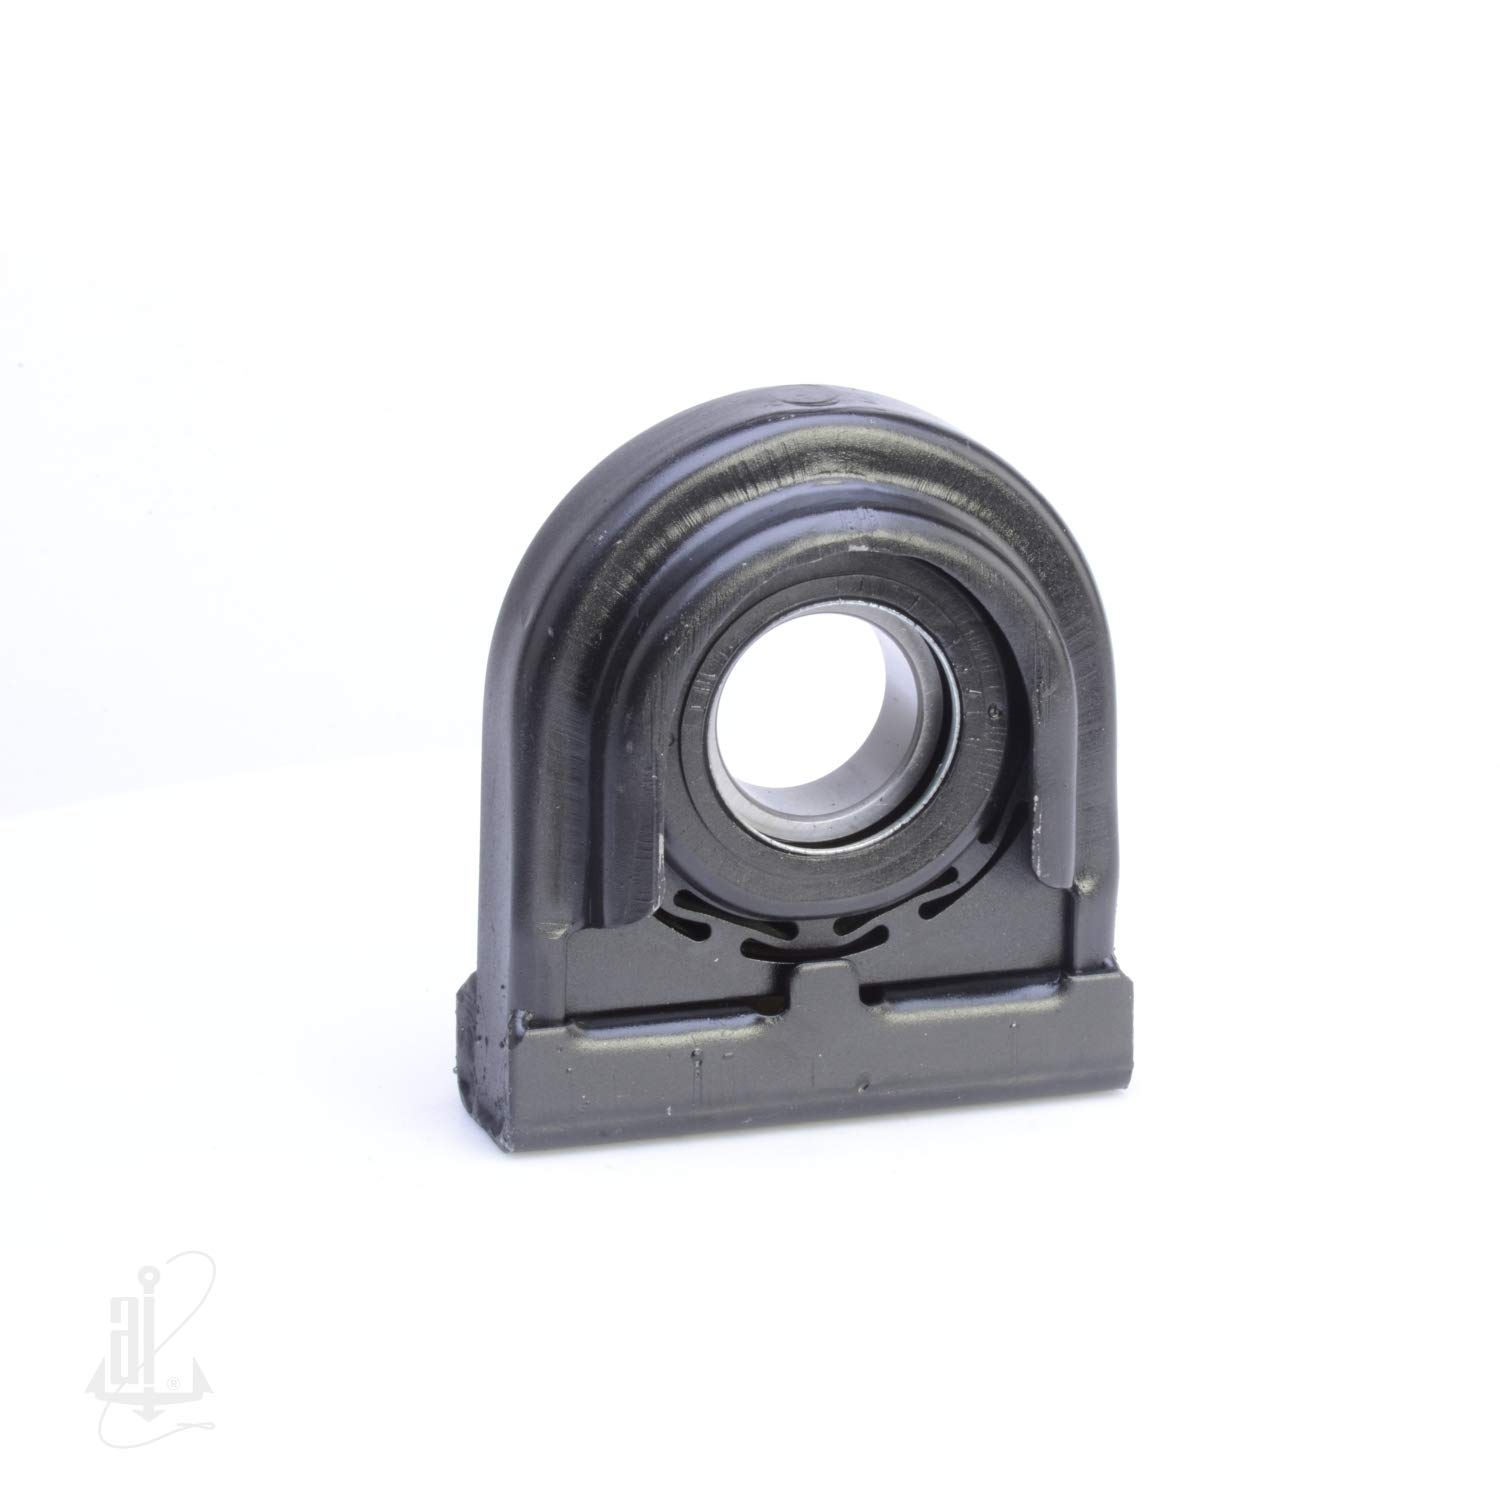 Anchor 6065 Center Support Bearing by Anchor (Image #3)